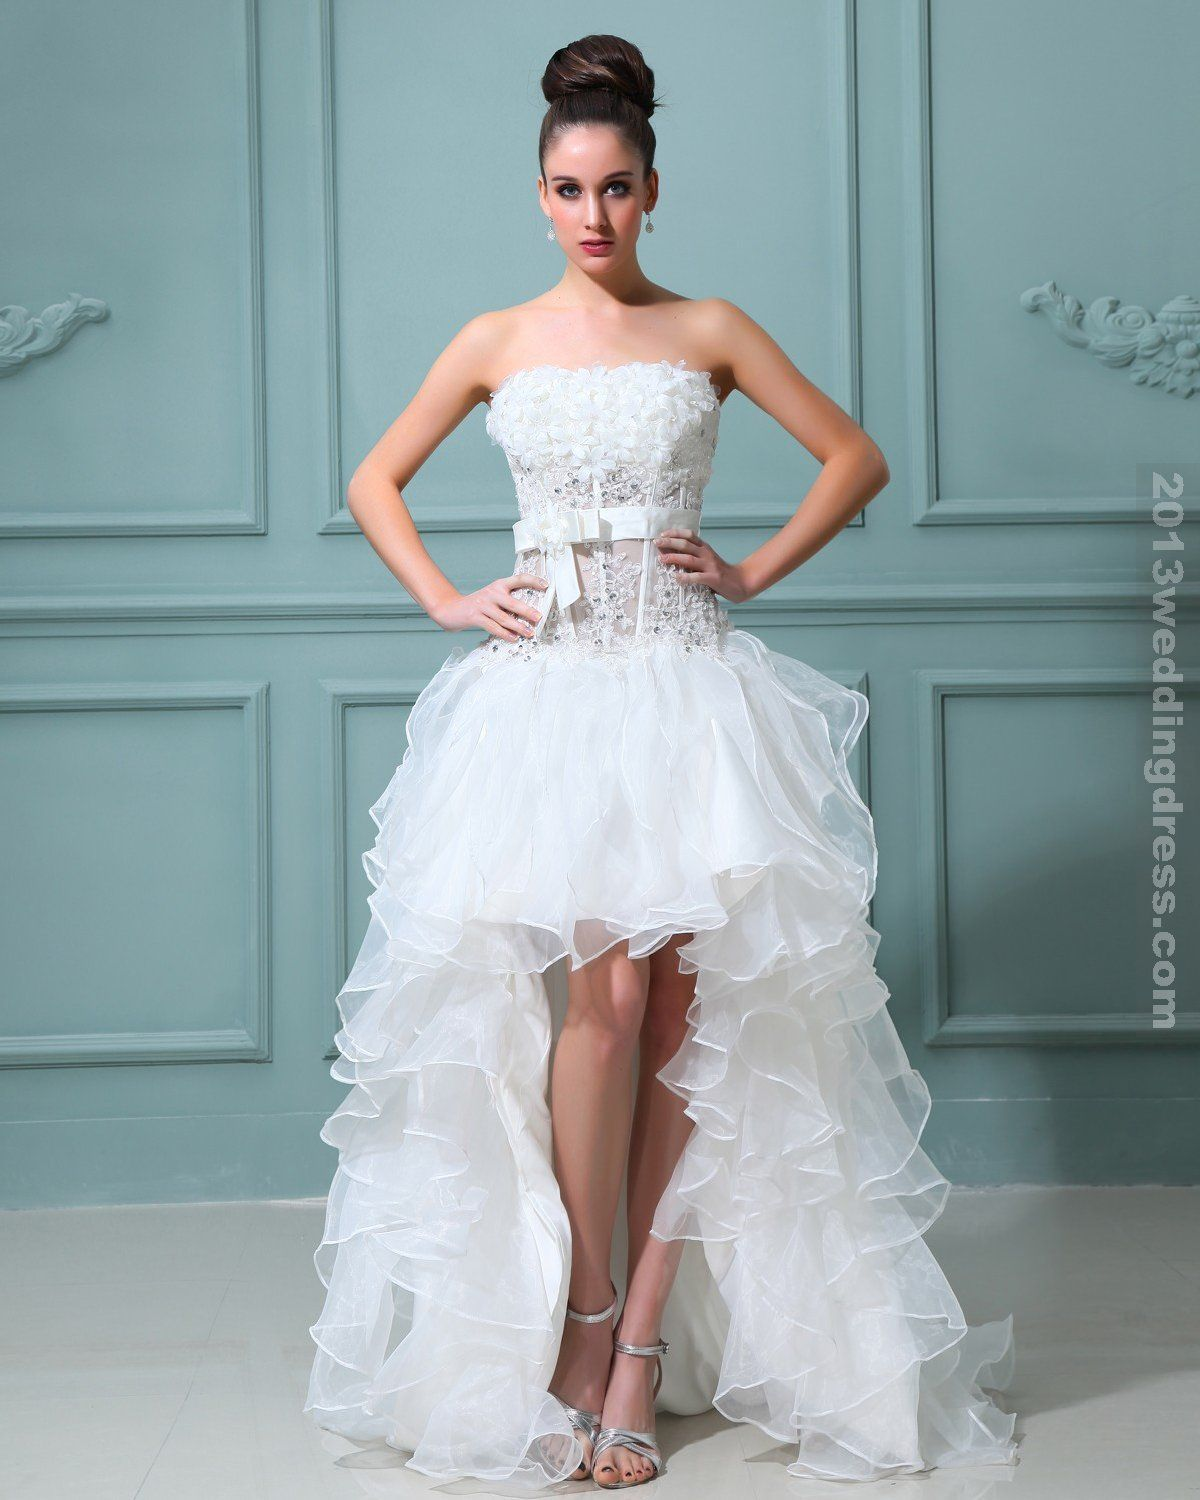 Images of Wedding Dresses For Short Brides - Reikian